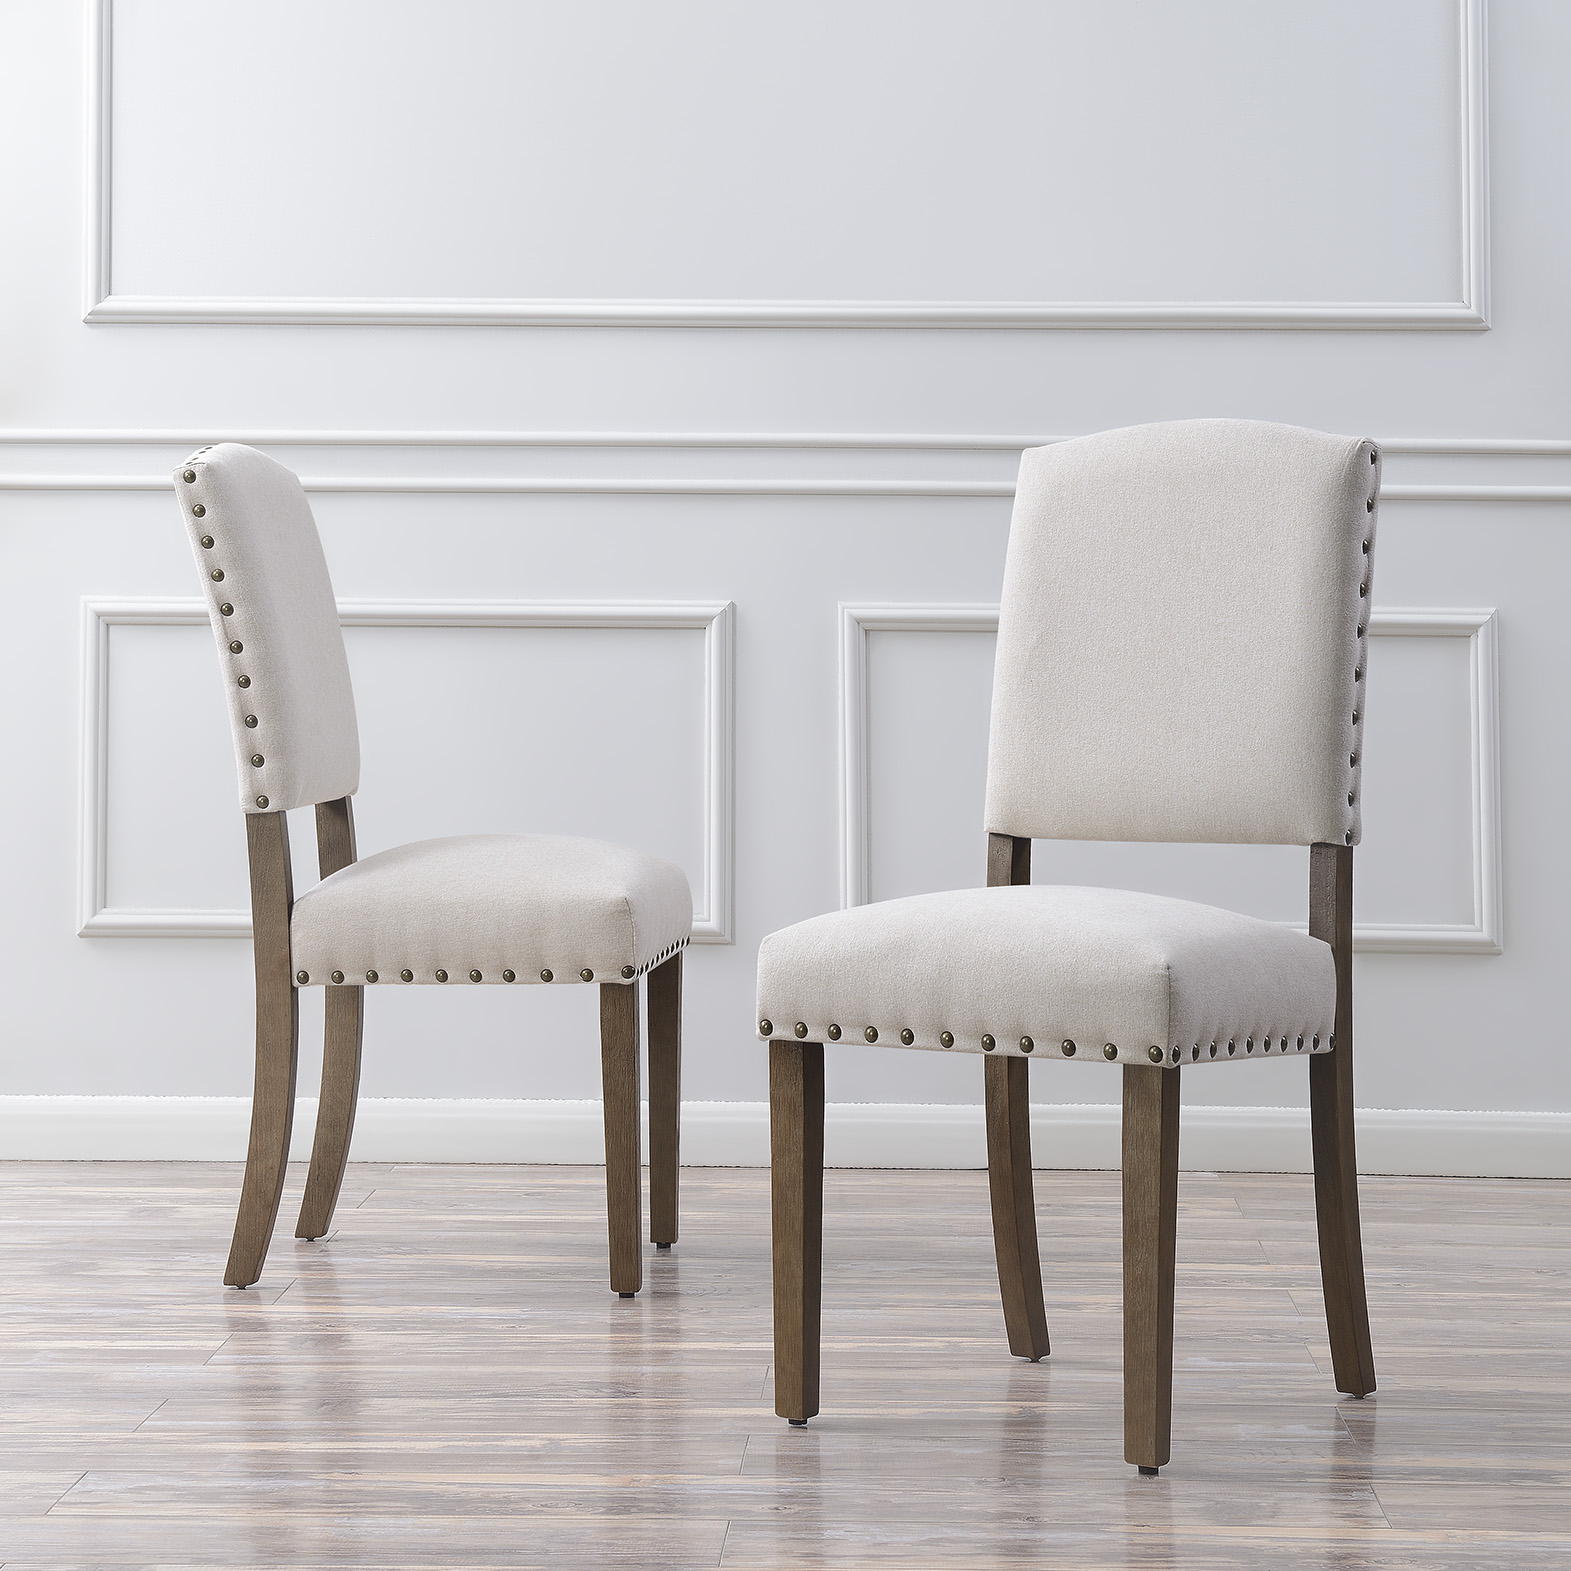 thumbnail 3 - Vintage Dining Chair Set of (2) Contemporary Extra Padded Cushion Seat